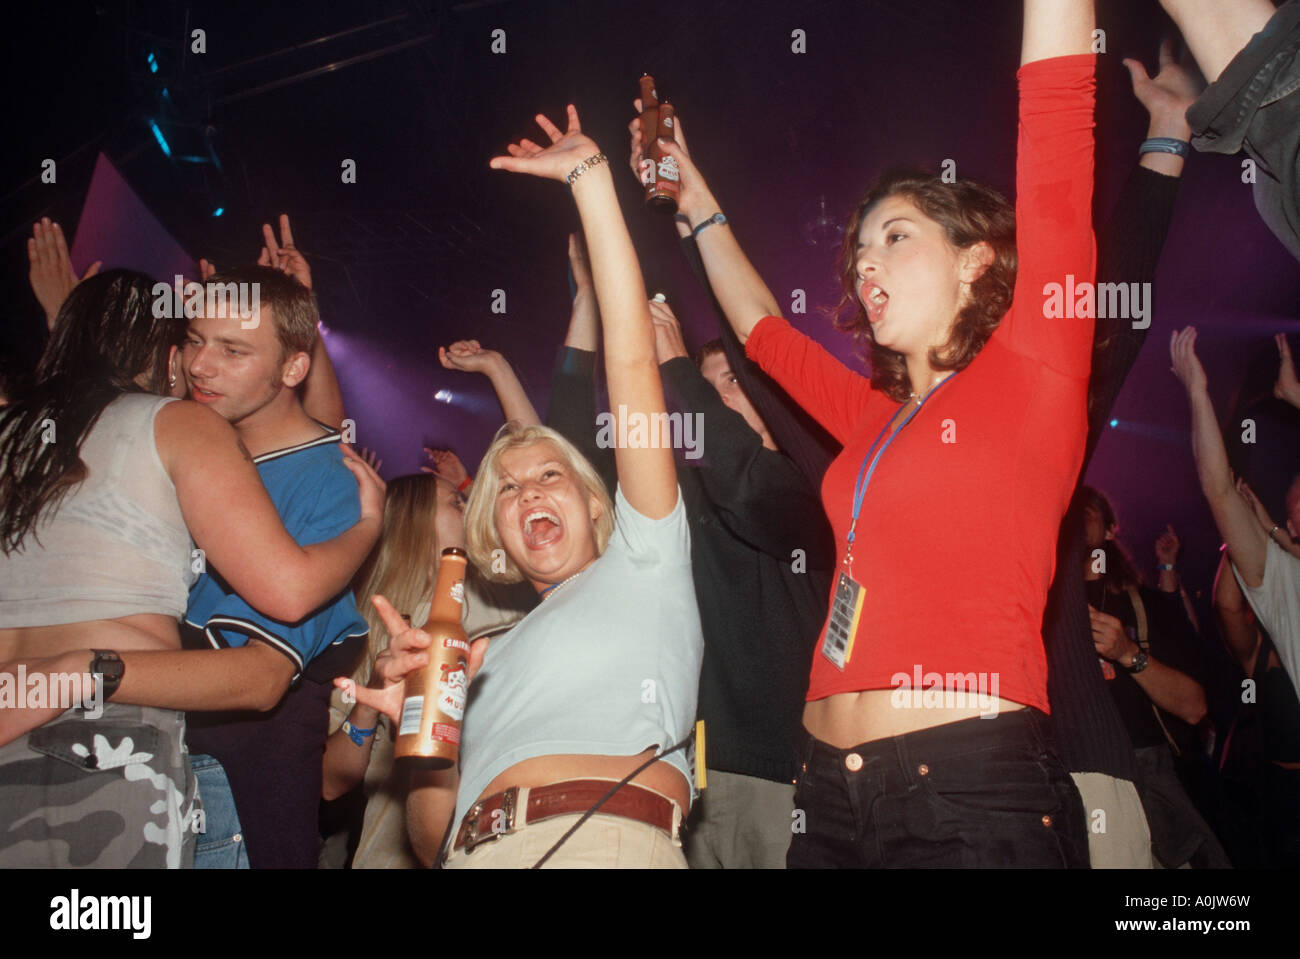 Clubbers having a good time Lynx Voodoo eclipse, august 1999 - Stock Image